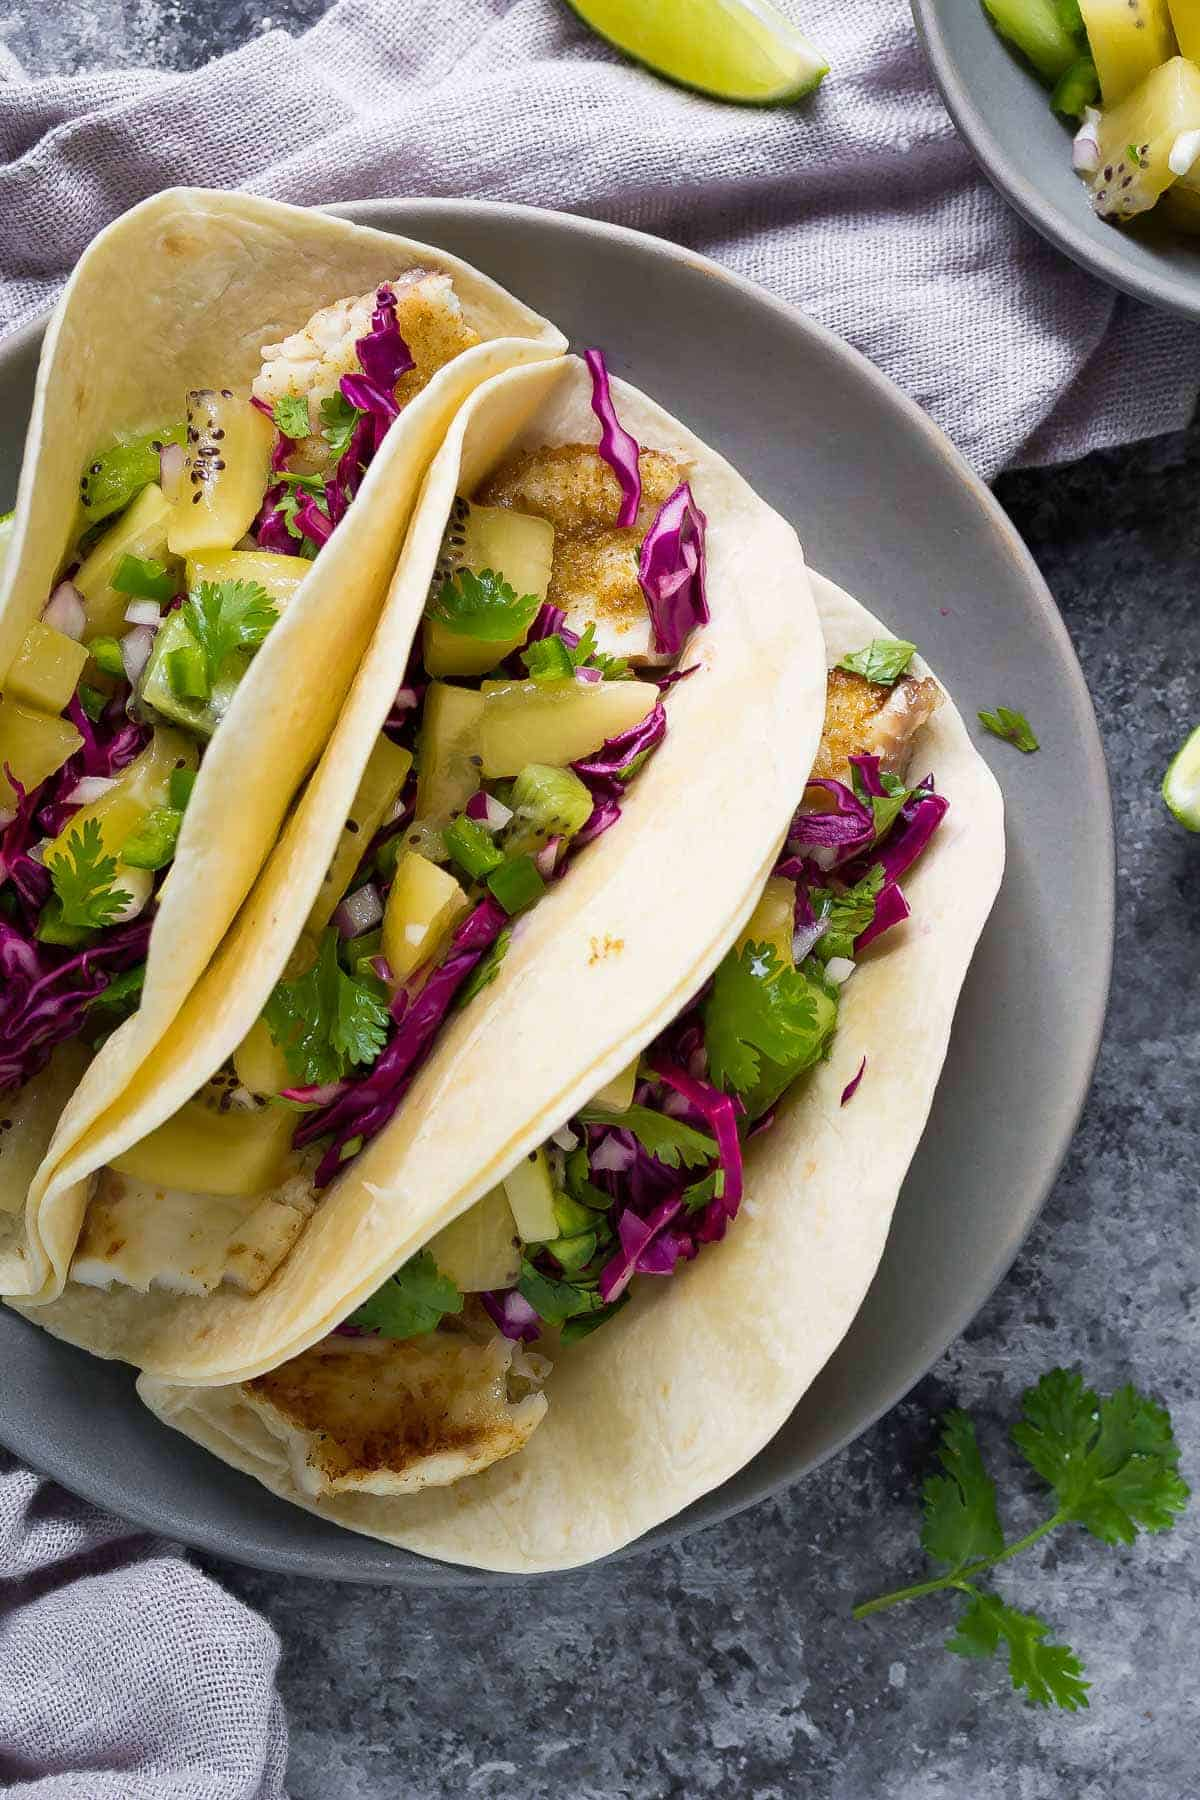 Grilled fish tacos with jalapeno kiwi salsa